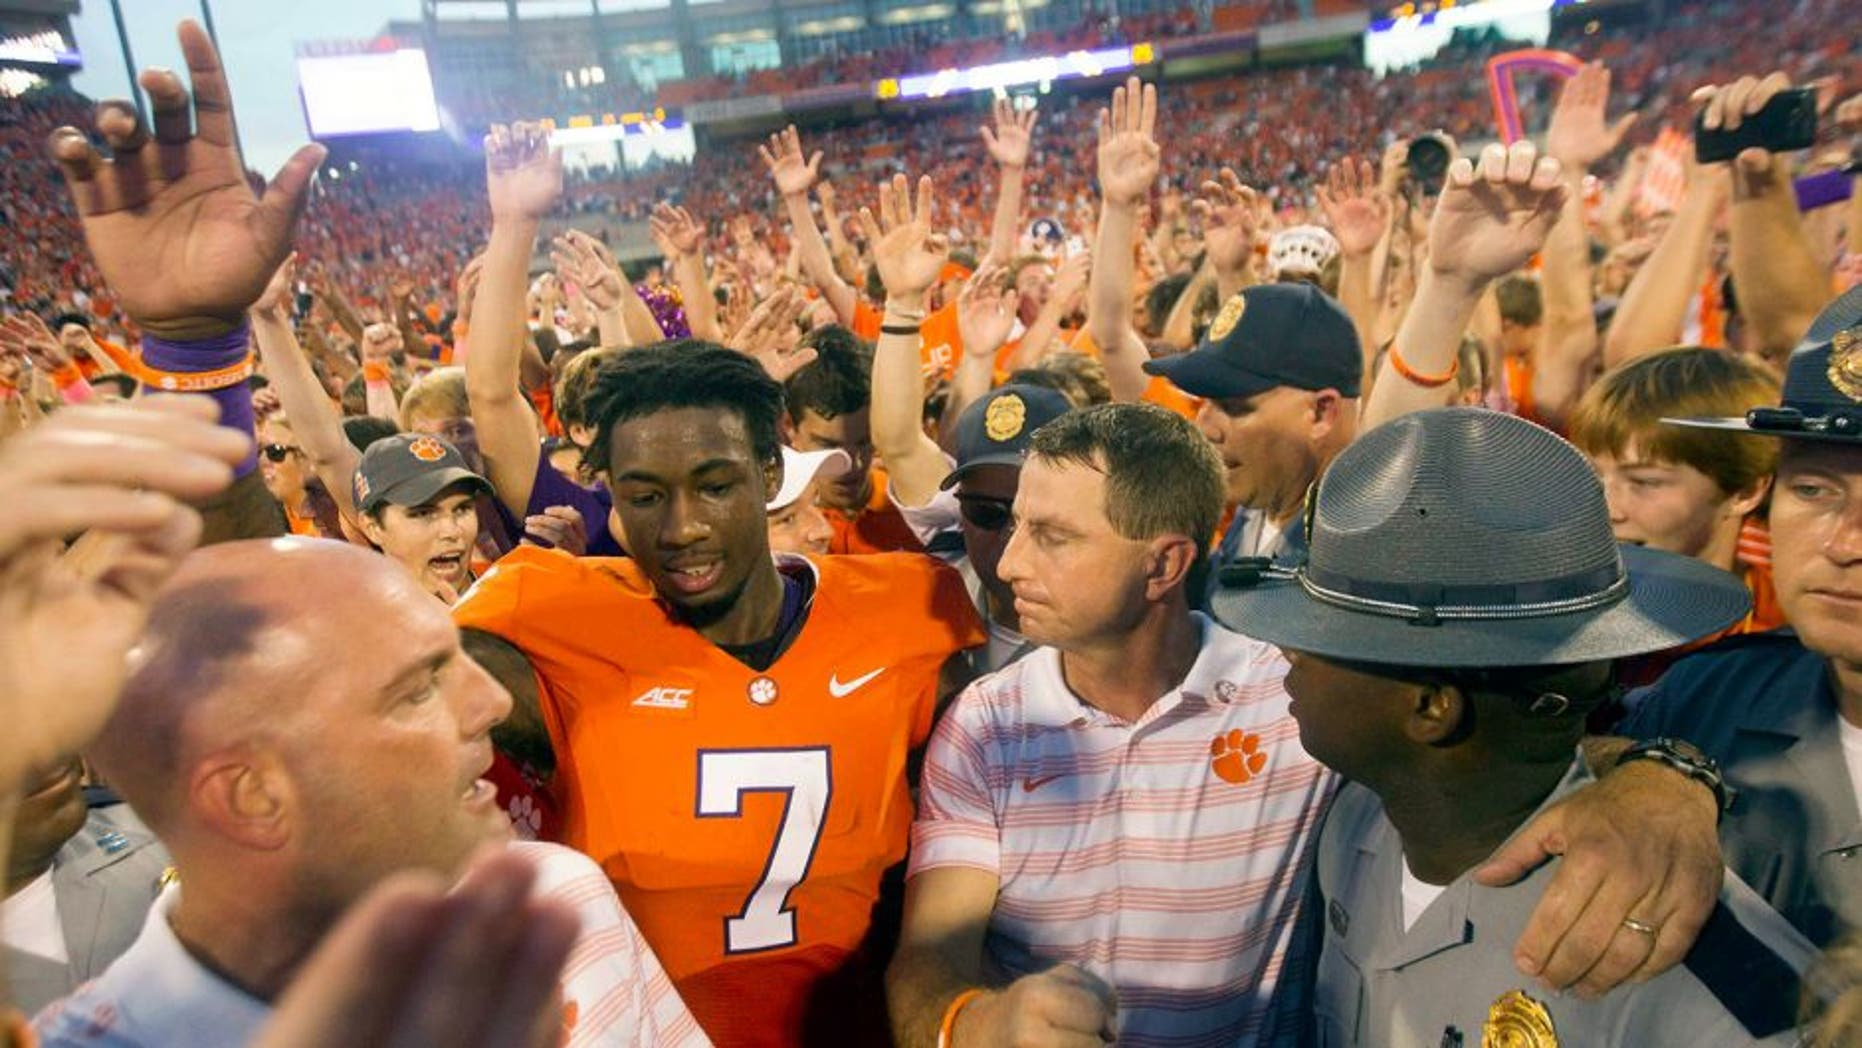 Oct 11, 2014; Clemson, SC, USA; Clemson Tigers wide receiver Mike Williams (7) celebrates with head coach Dabo Swinney (center right) after the game against the Louisville Cardinals at Clemson Memorial Stadium. Tigers won 23-17. Mandatory Credit: Joshua S. Kelly-USA TODAY Sports